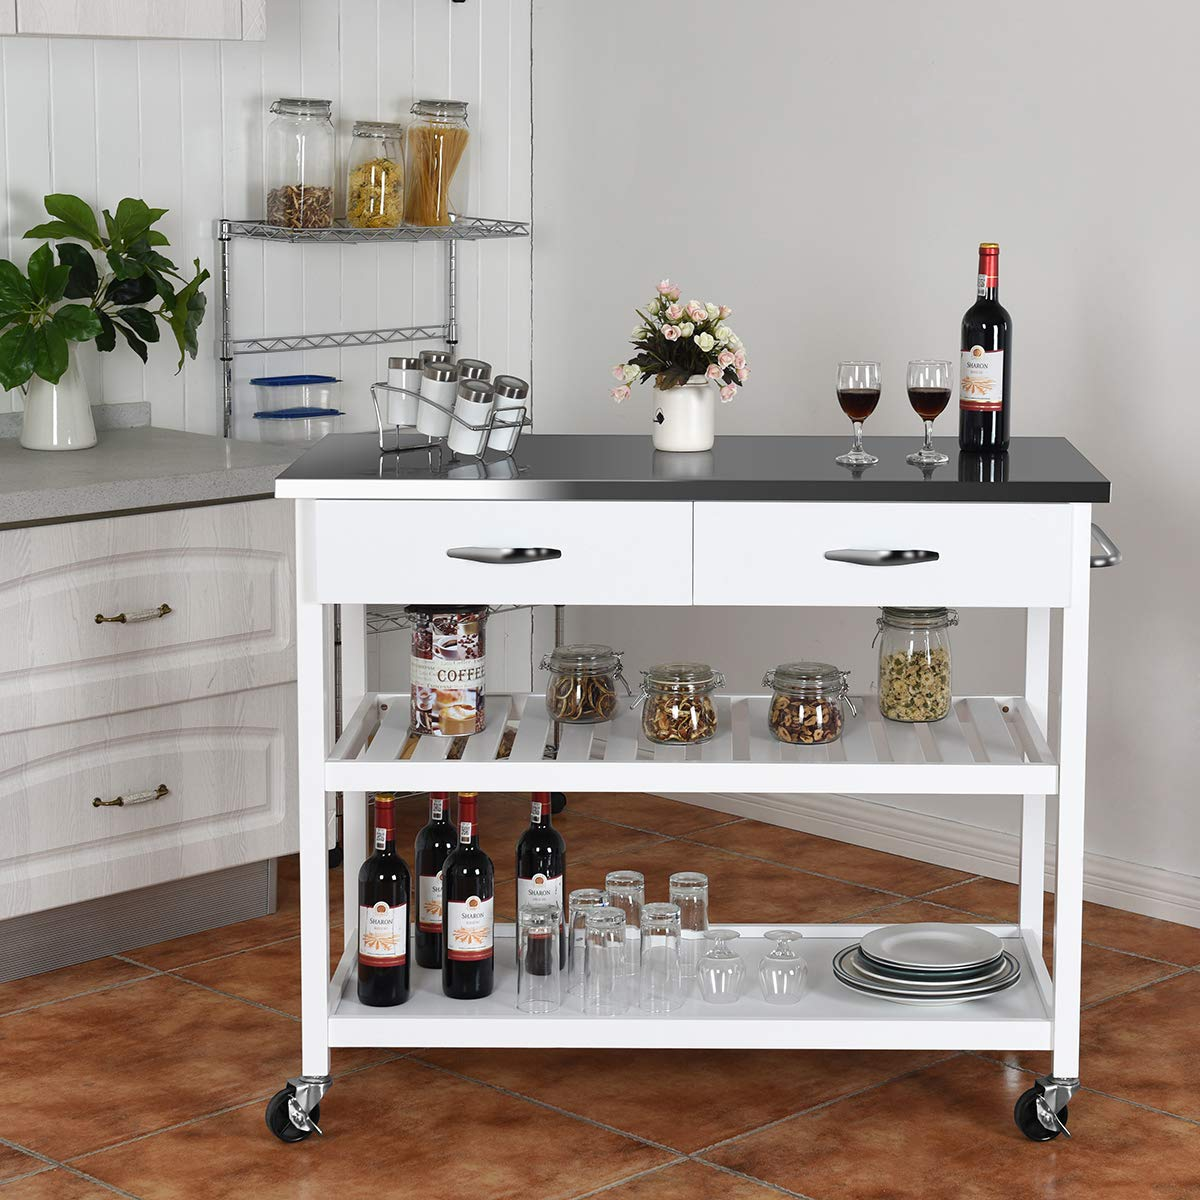 Giantex Kitchen Trolley Cart Rolling Island Cart Serving Cart Large Storage with Stainless Steel Countertop, Lockable Wheels, 2 Drawers and Shelf Utility Cart for Home and Restaurant, (White) by Giantex (Image #3)